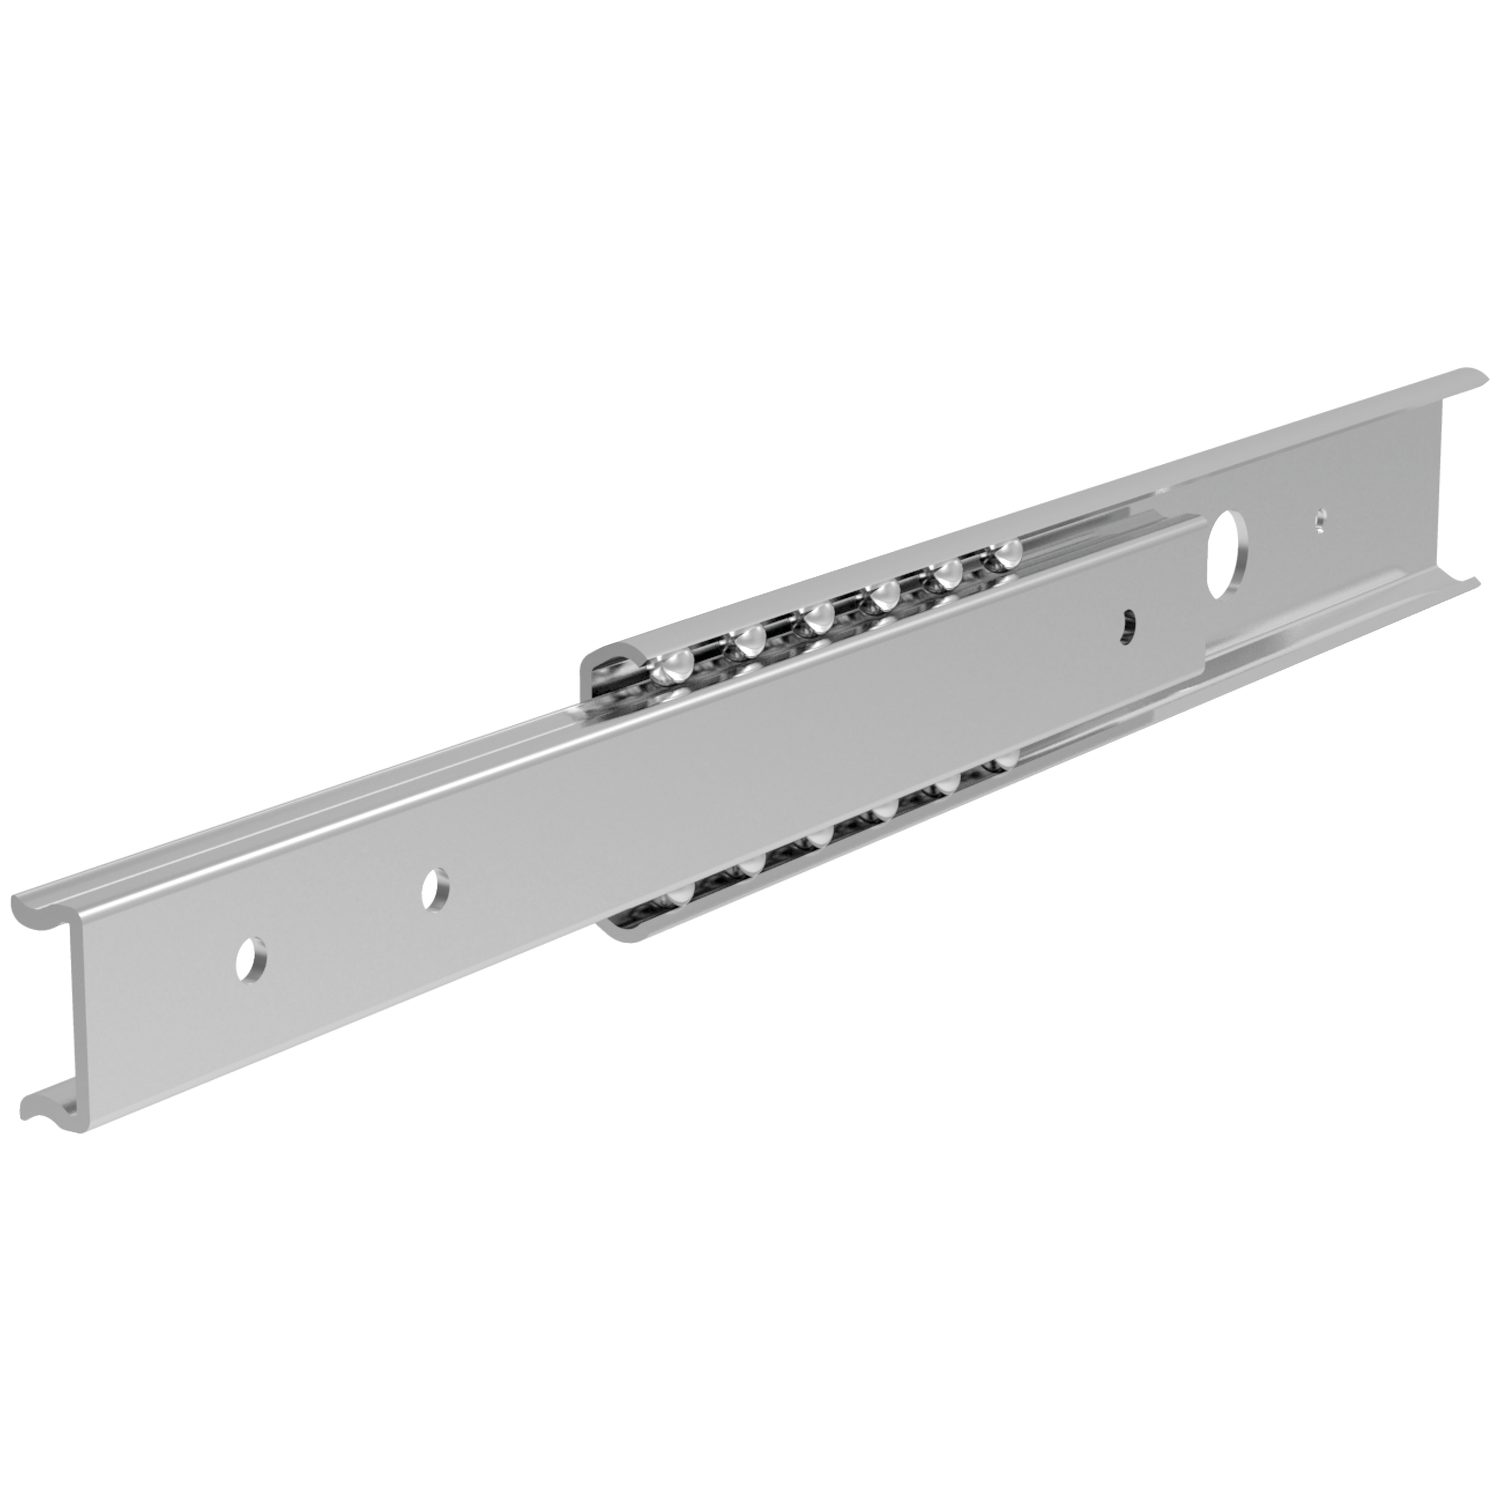 Self-Retracting Drawer Slides Commercial light duty telescopic drawer slides.